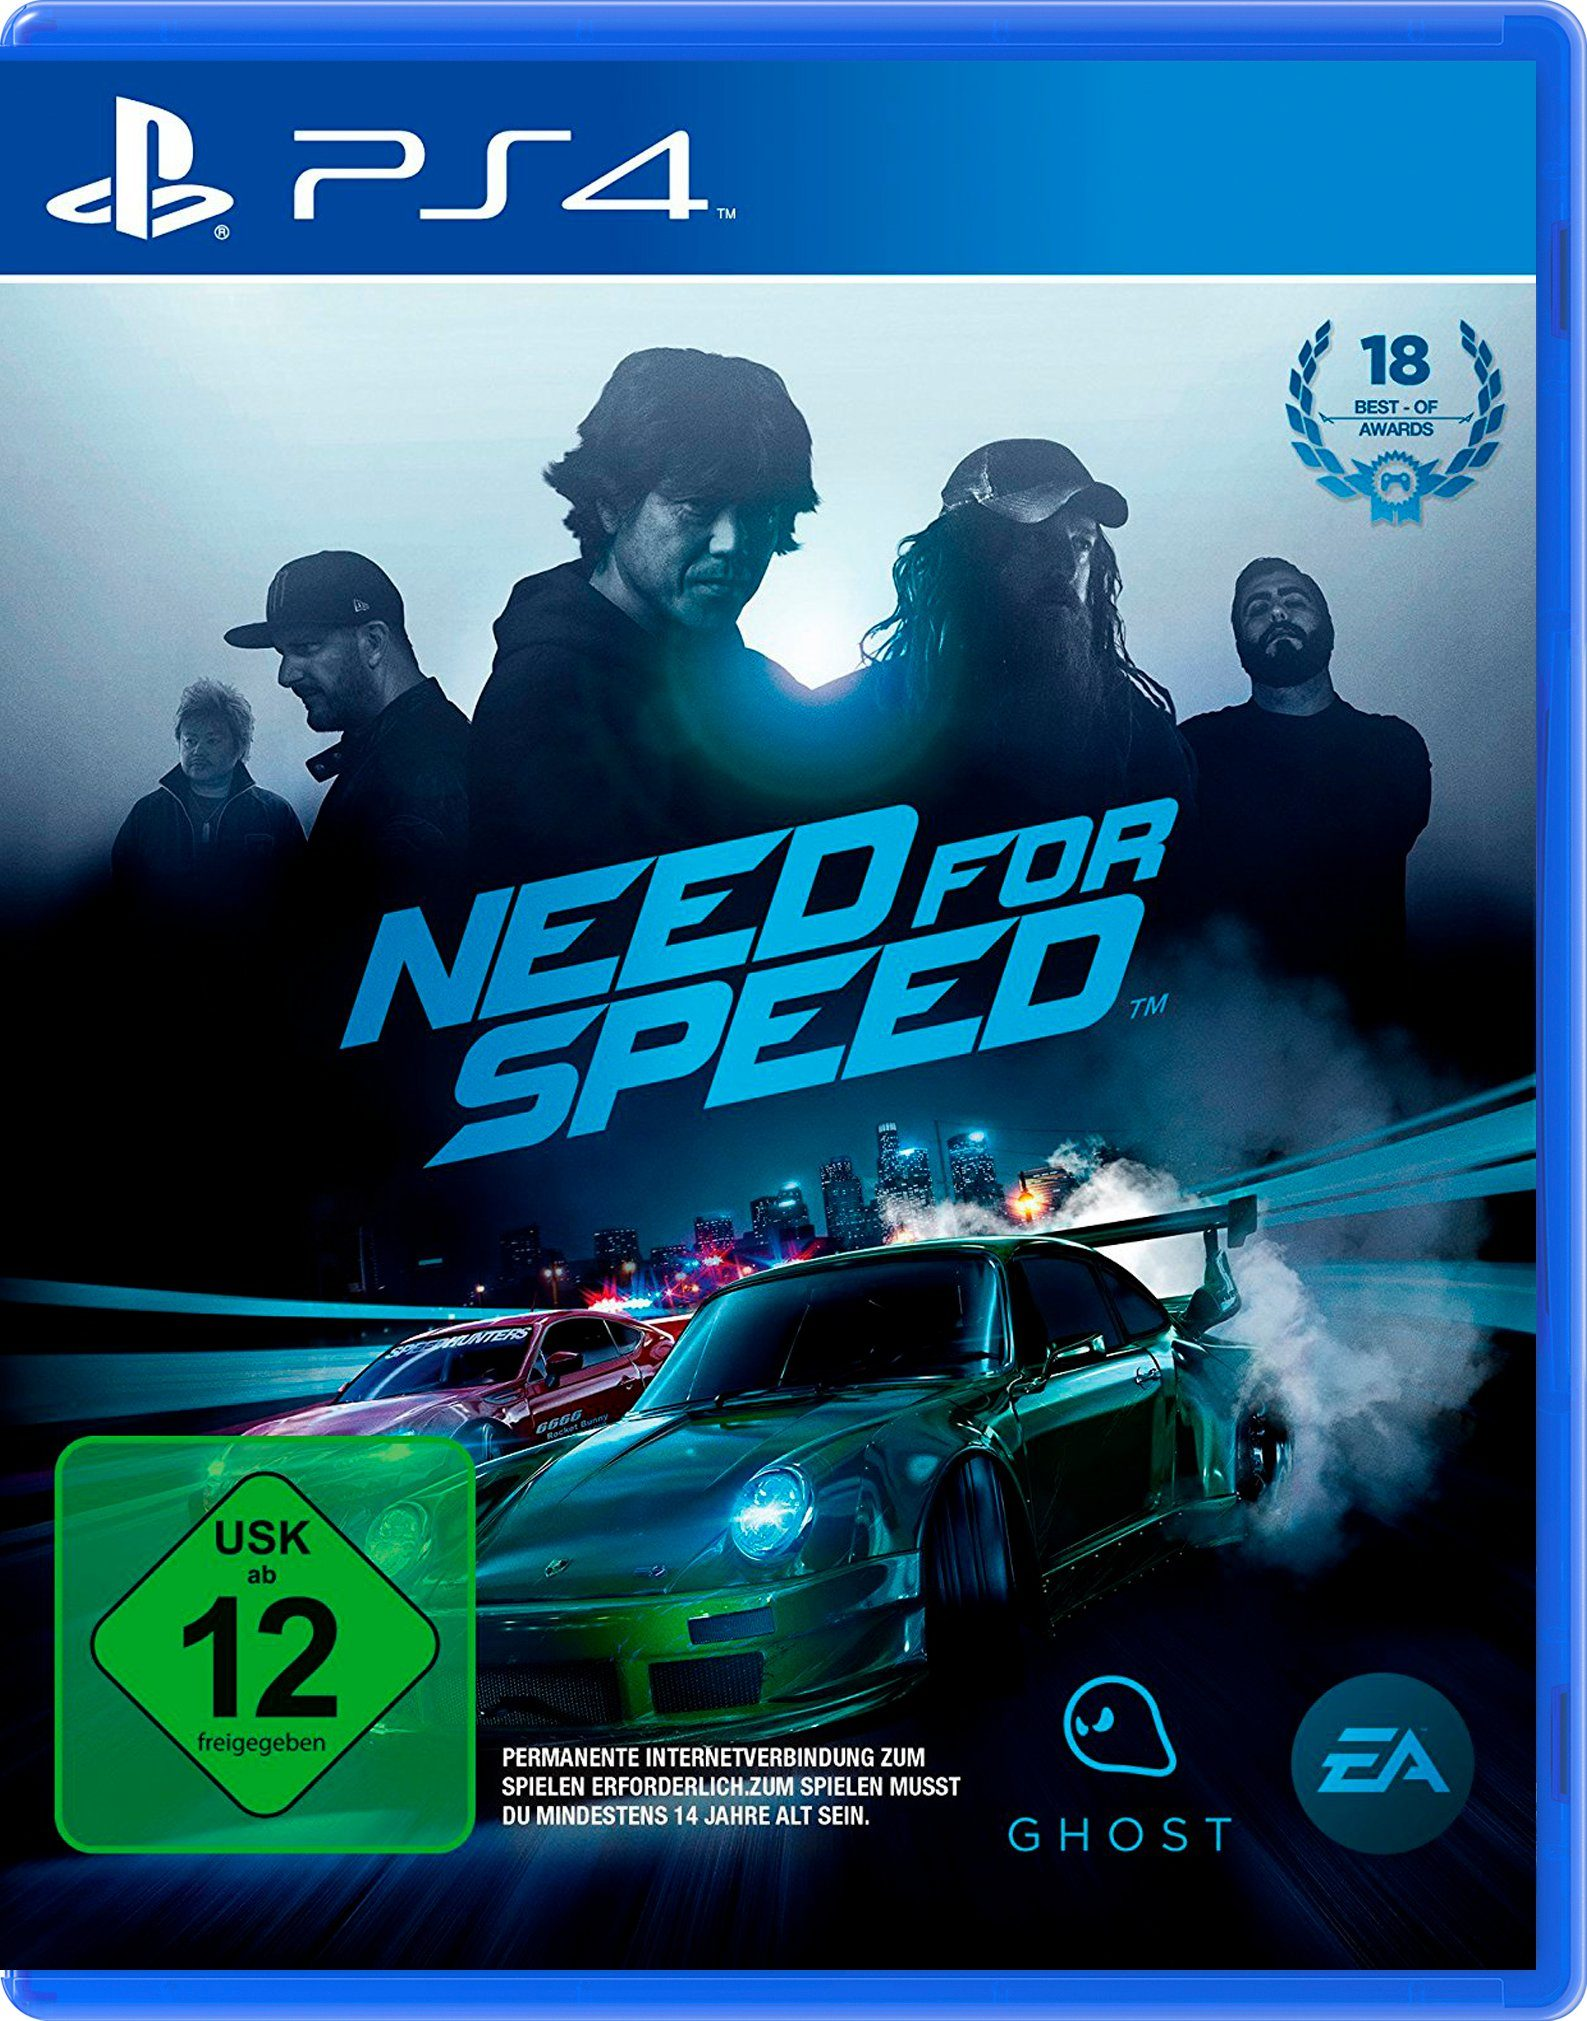 Electronic Arts Software Pyramide - Playstation 4 Spiel »Need for Speed«